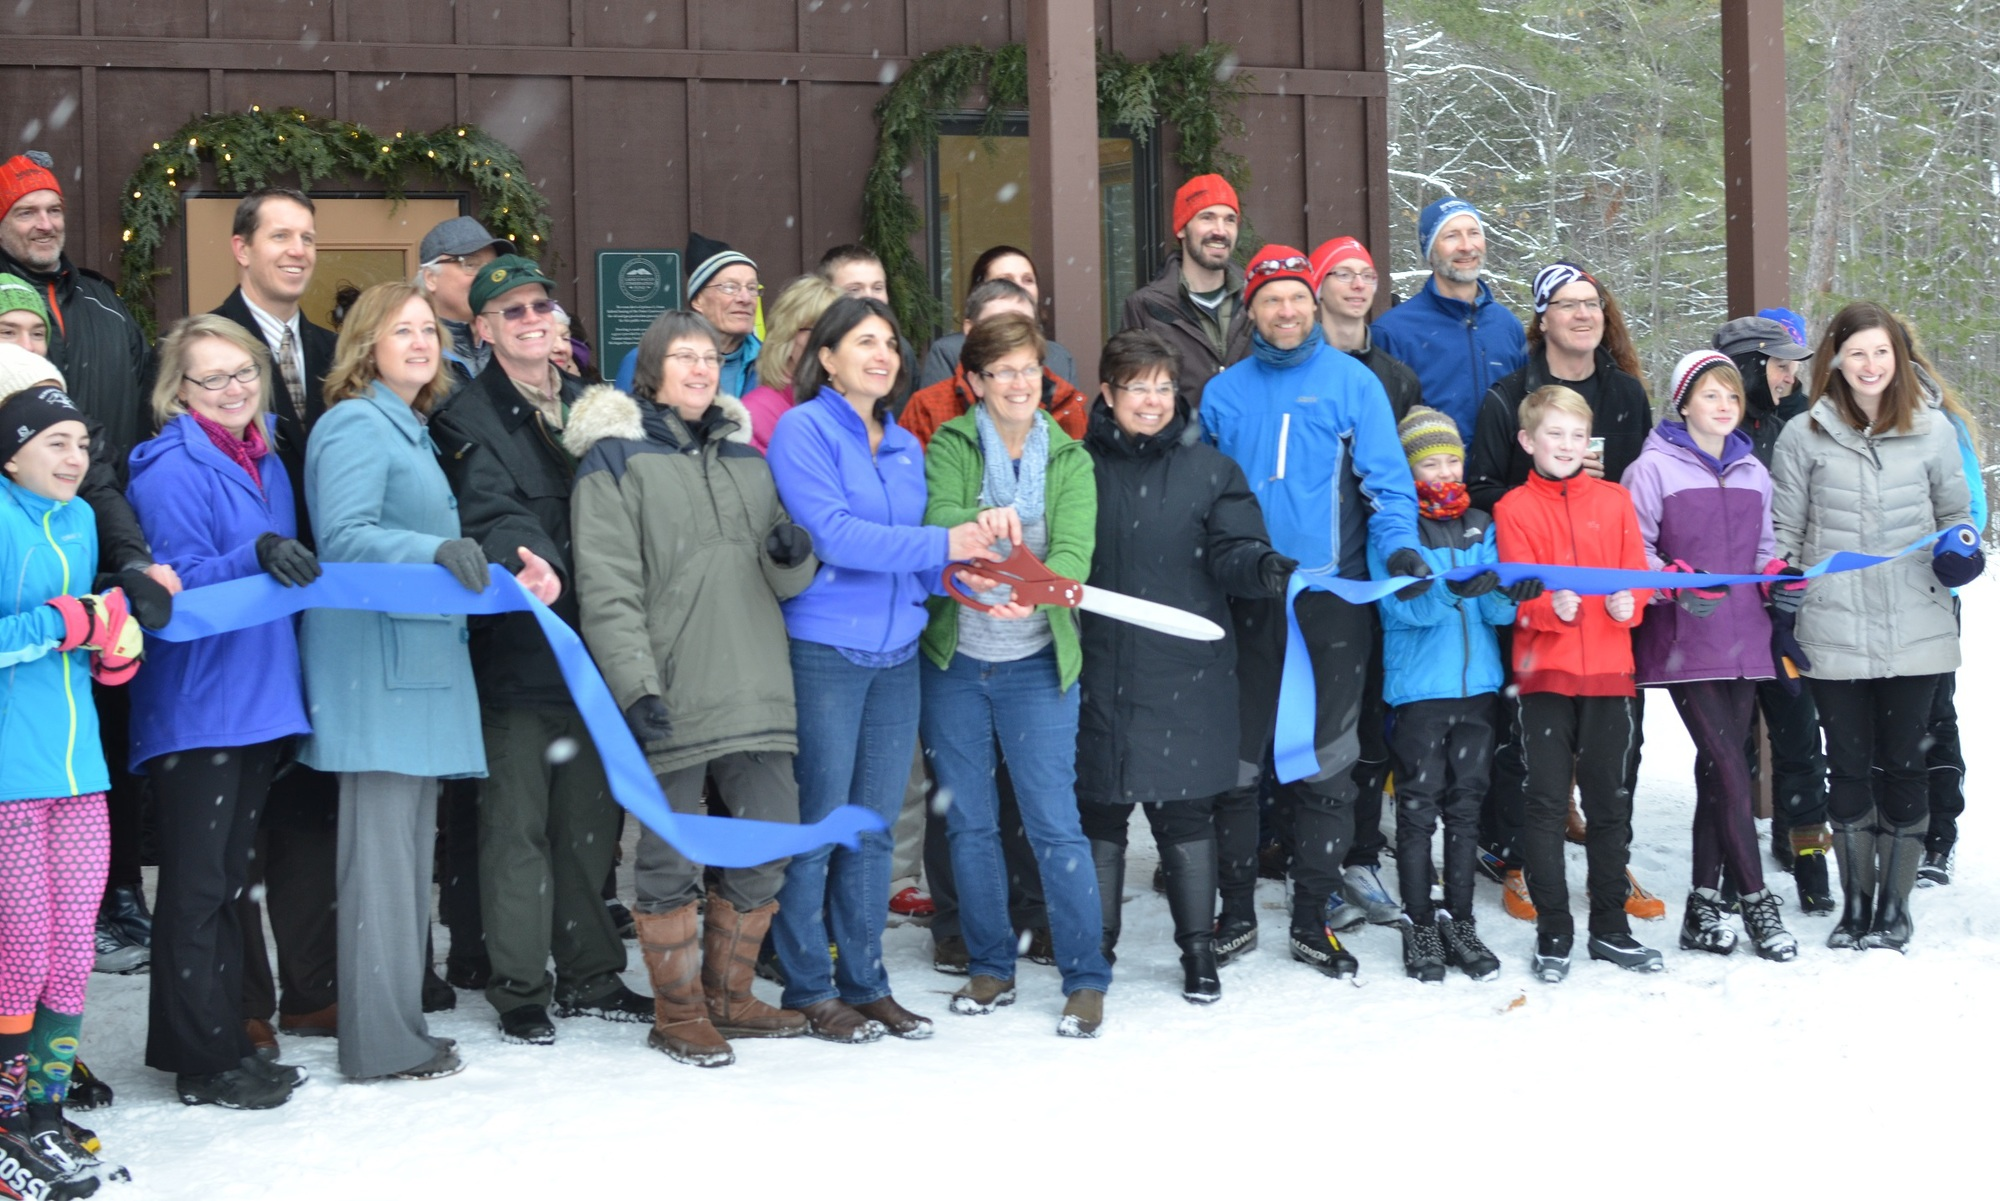 A large group of skiers, partners and others stands in front of the new warming hut for a ribbon-cutting ceremony at Blueberry Ridge.